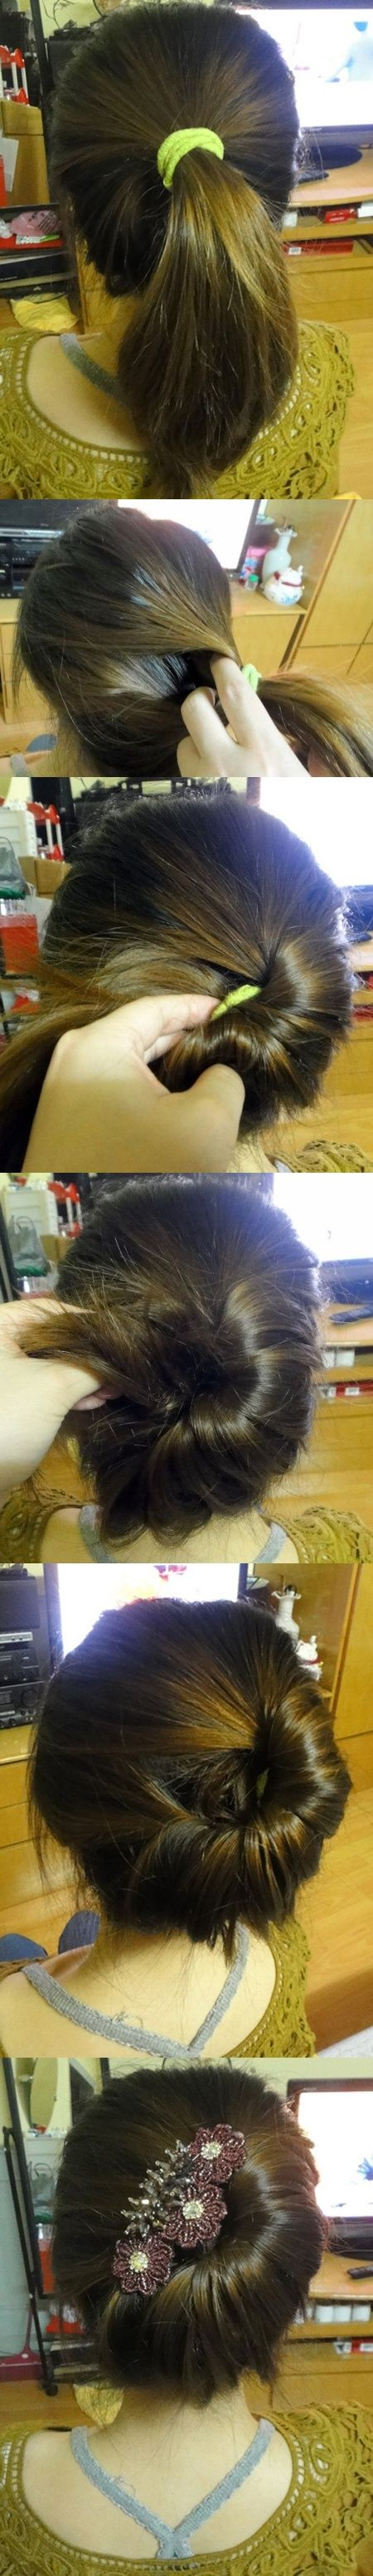 Cool way to do hair.